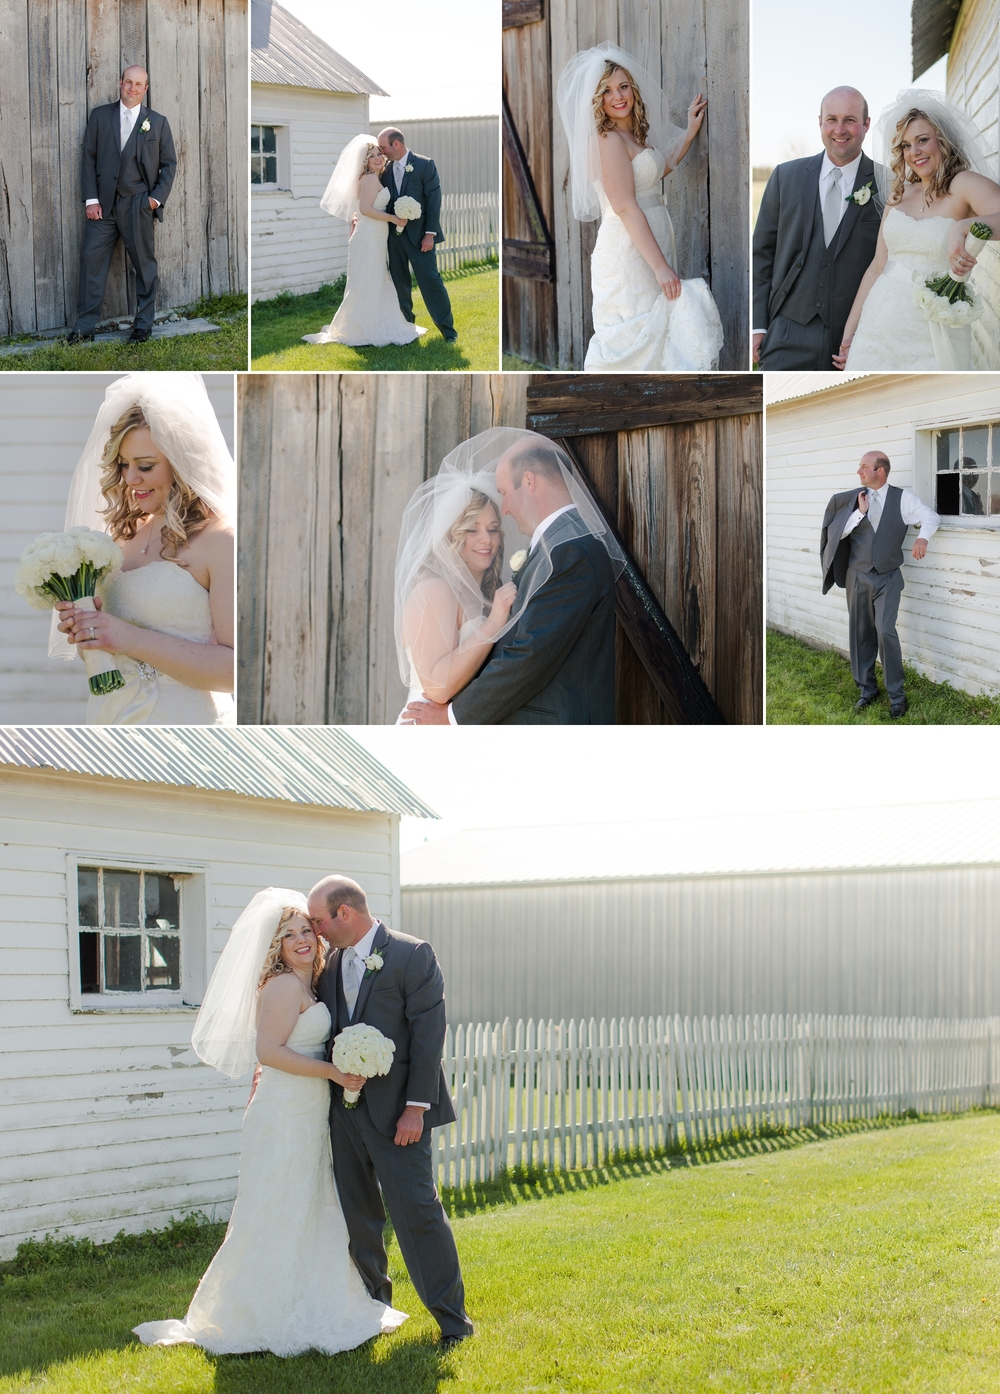 winery_wedding_photography_stl_st_louis_spring_april_poses 9.jpg